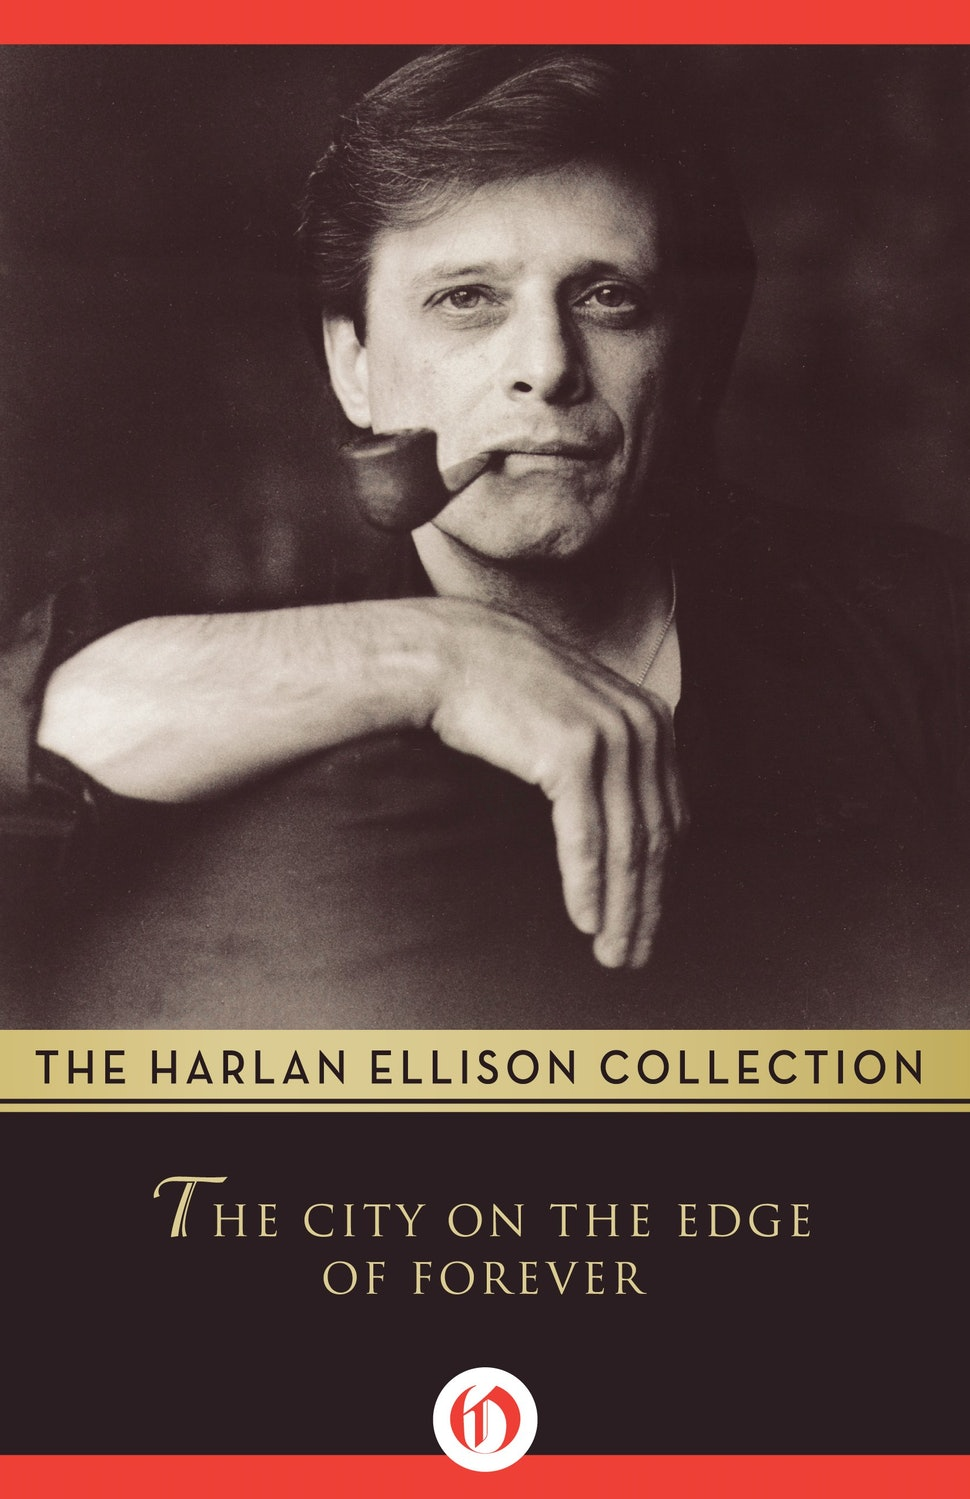 an analysis of the stories of harlan ellison an author Los angeles – harlan ellison, the prolific, pugnacious author of a boy and his dog, and countless other stories that blasted society with their nightmarish, sometimes darkly humorous scenarios, has died at age 84.